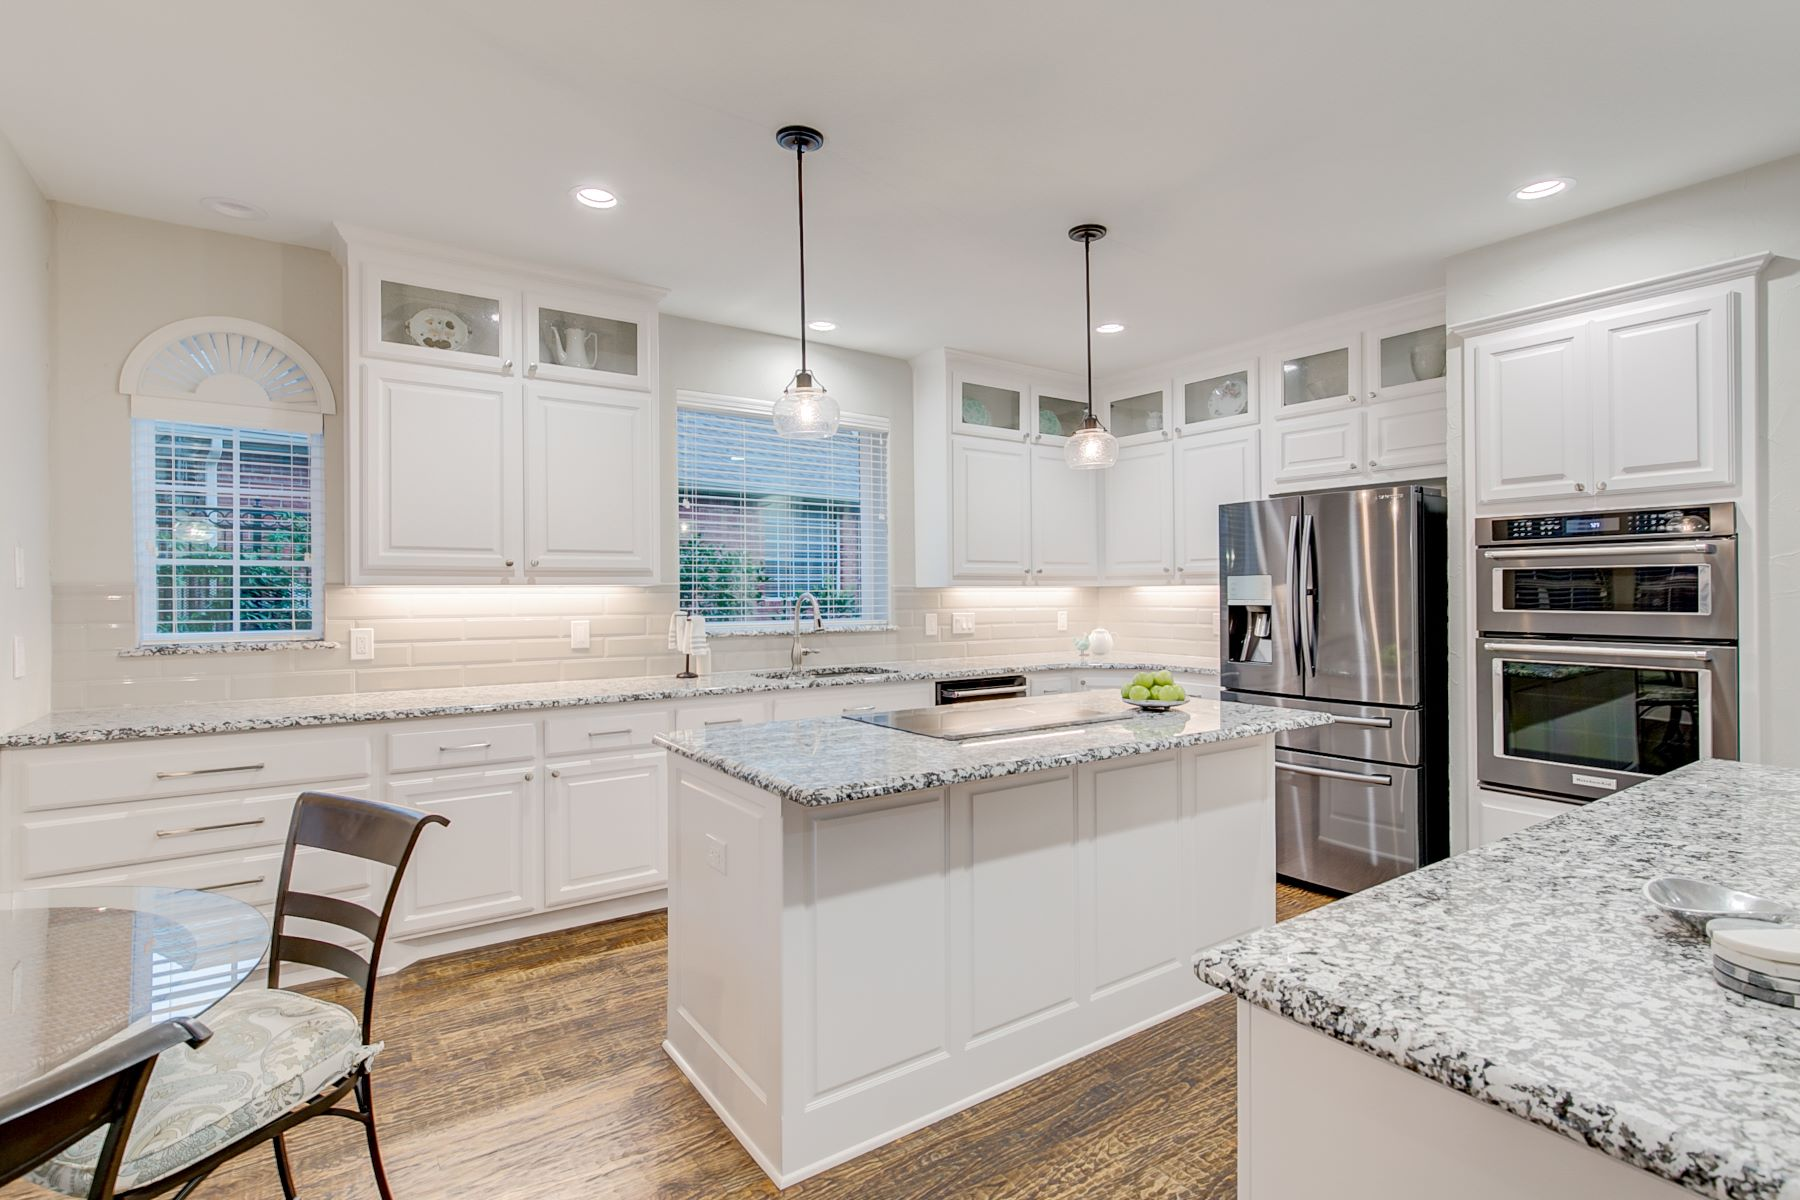 Single Family Homes for Sale at Stunning Remodel Near Lake Lewisville 2644 Hillside Drive Highland Village, Texas 75077 United States